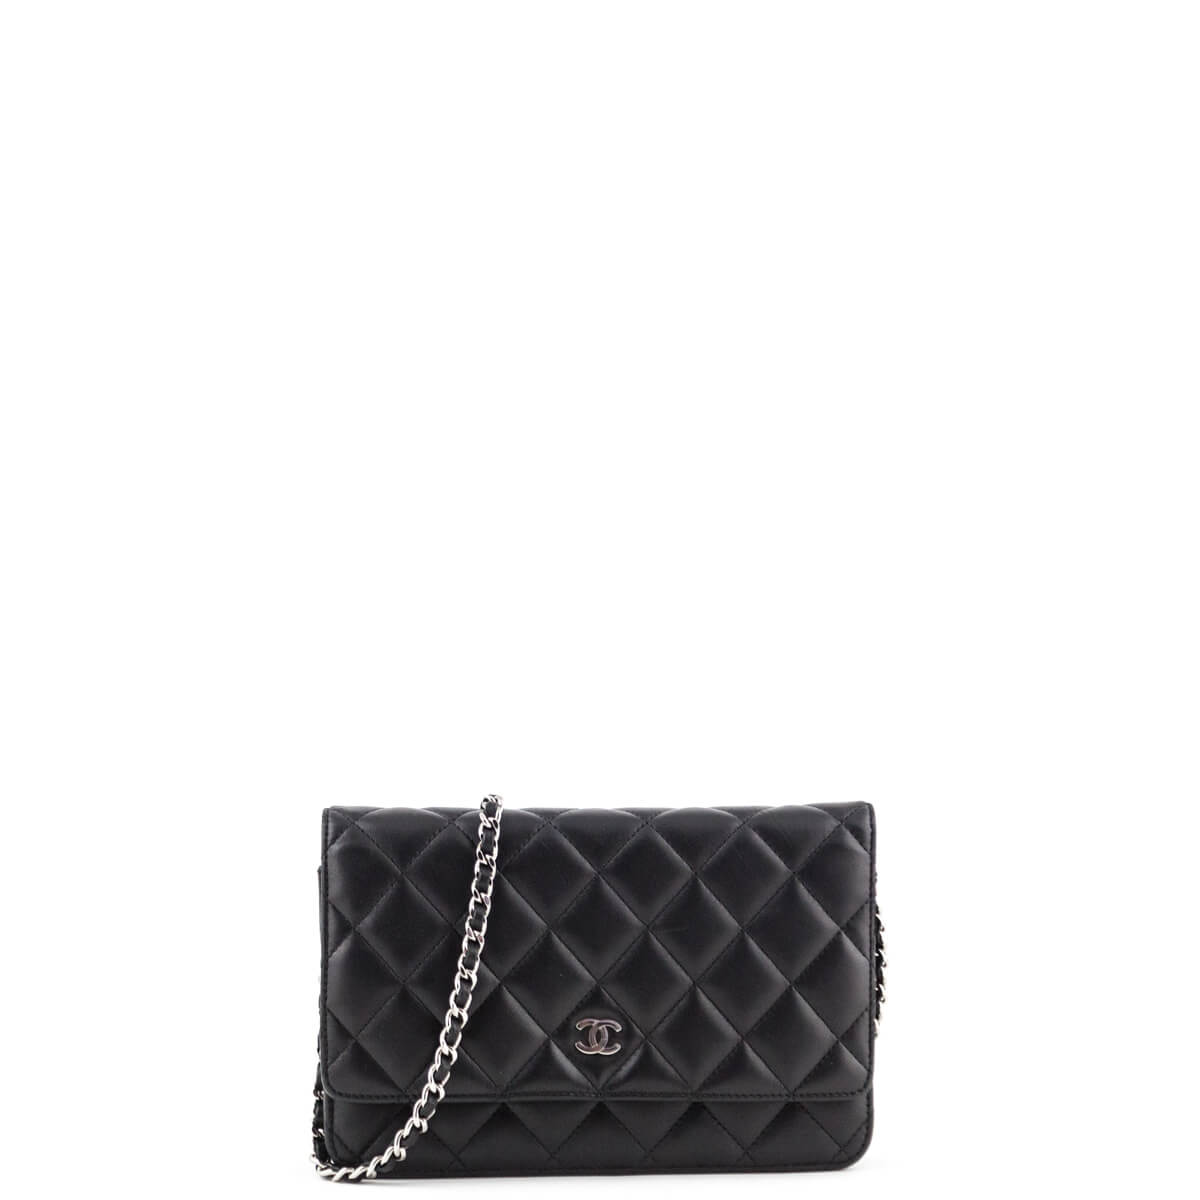 0a423f2bb494 Chanel Black Quilted Lambskin Wallet on Chain SHW - LOVE that BAG - Preowned  Authentic Designer ...